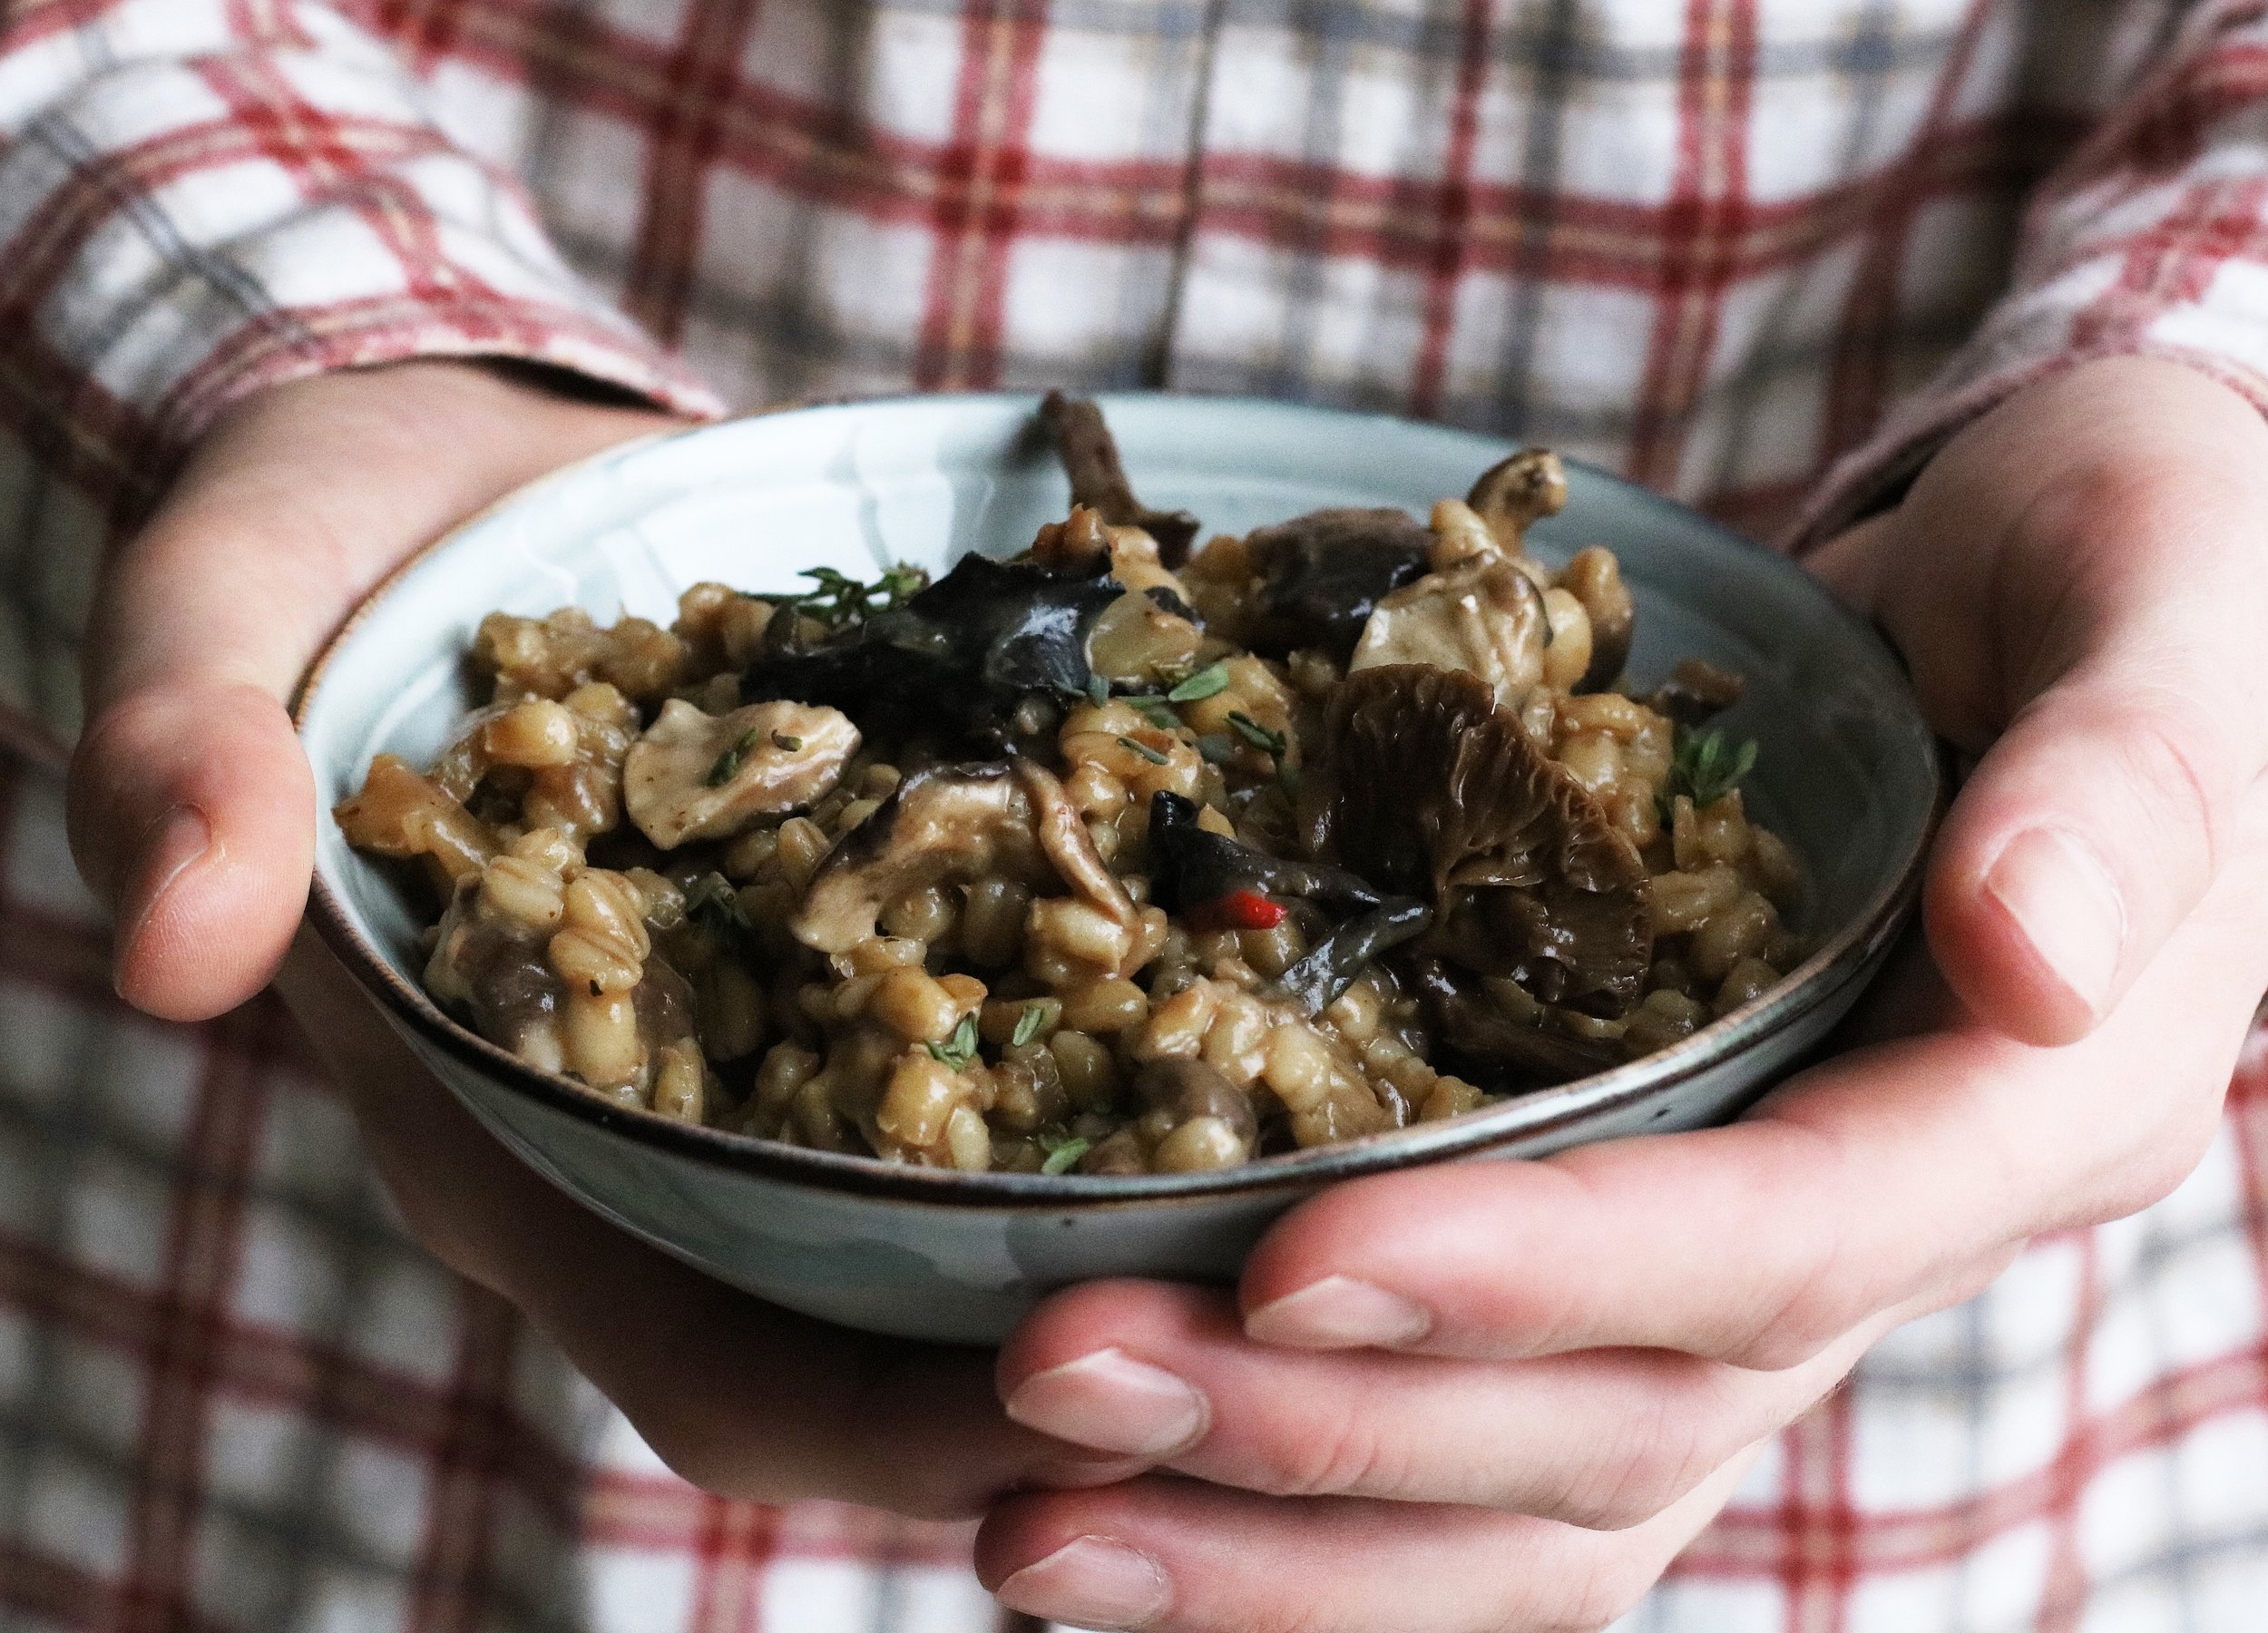 MUSHROOM & BARLEY RISOTTO   All year round.  Nutty wild mushrooms paired with my favourite British grain - barley. This recipe creates a creamy, earthy bowl of goodness.